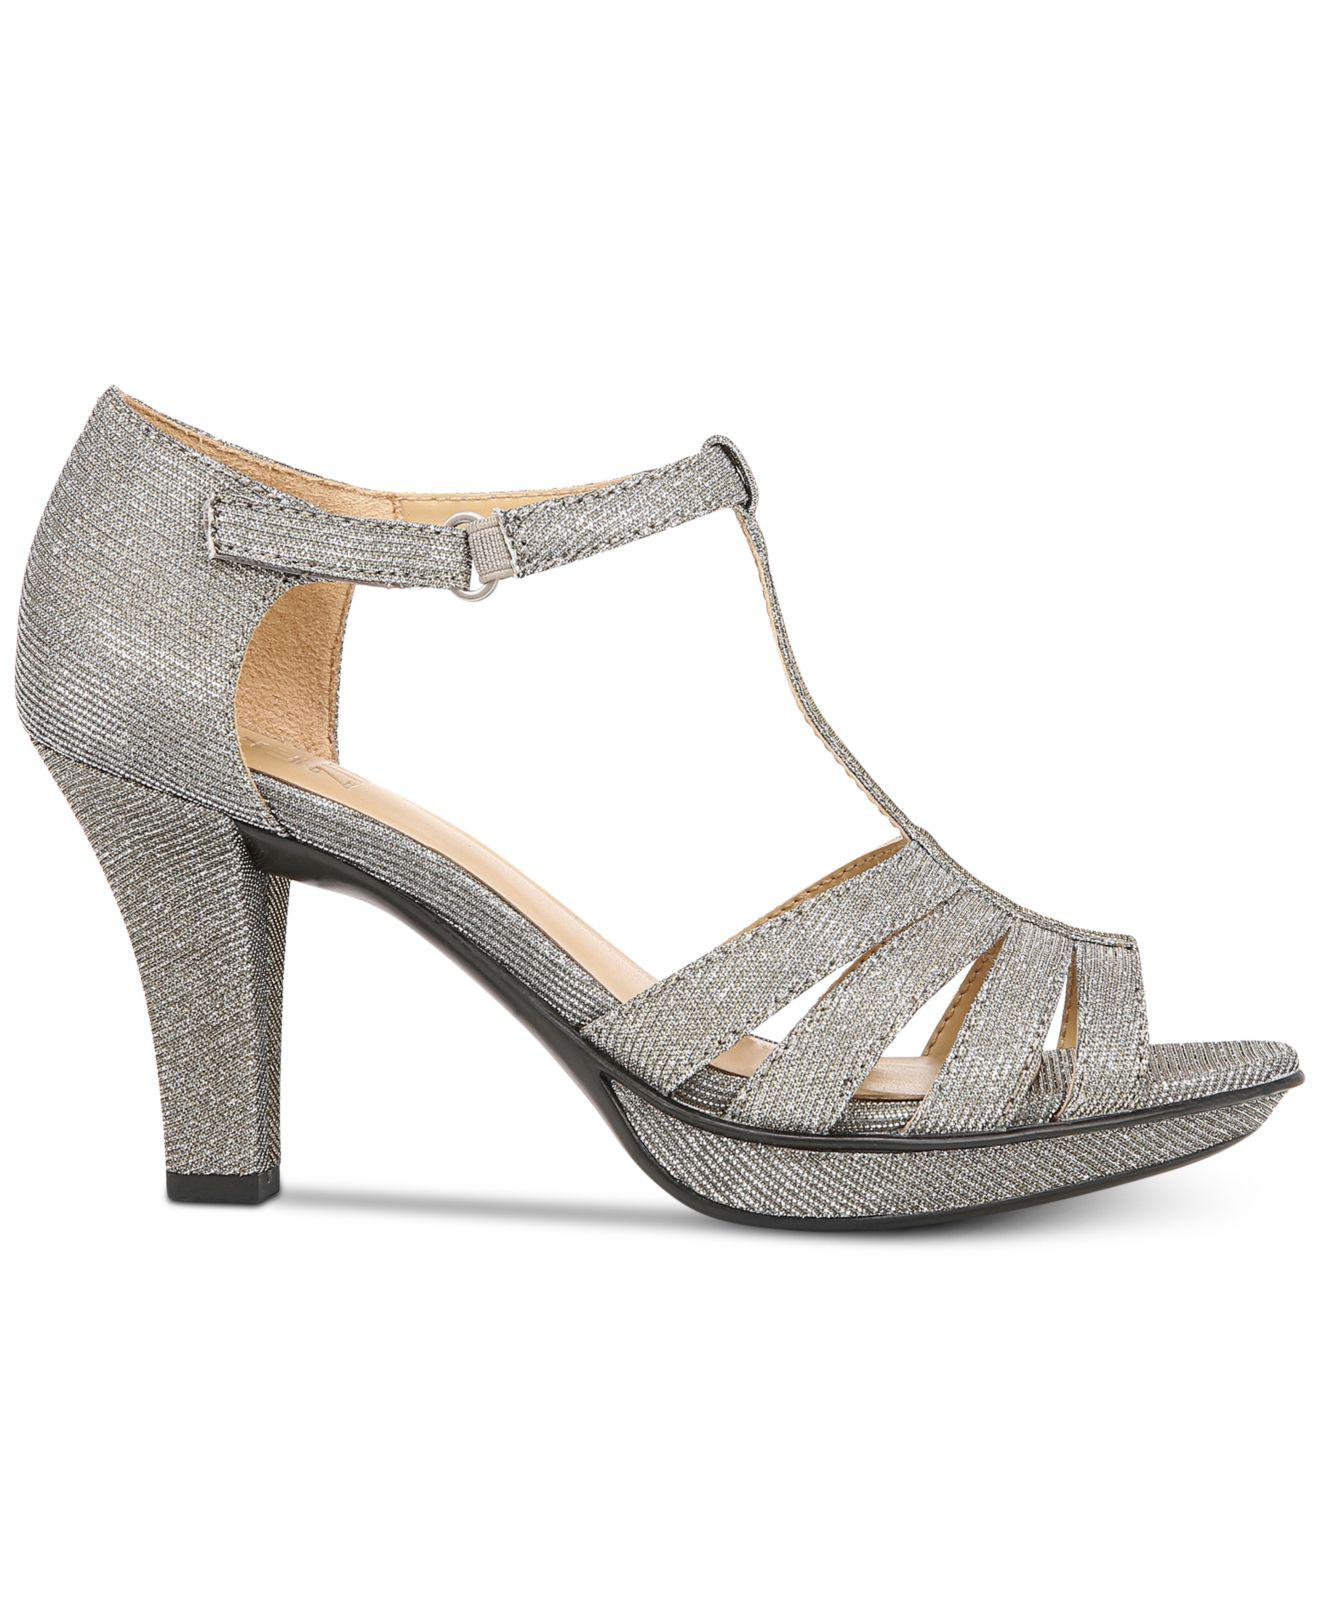 04a6479d67a Lyst - Naturalizer Delight Dress Sandals in Gray